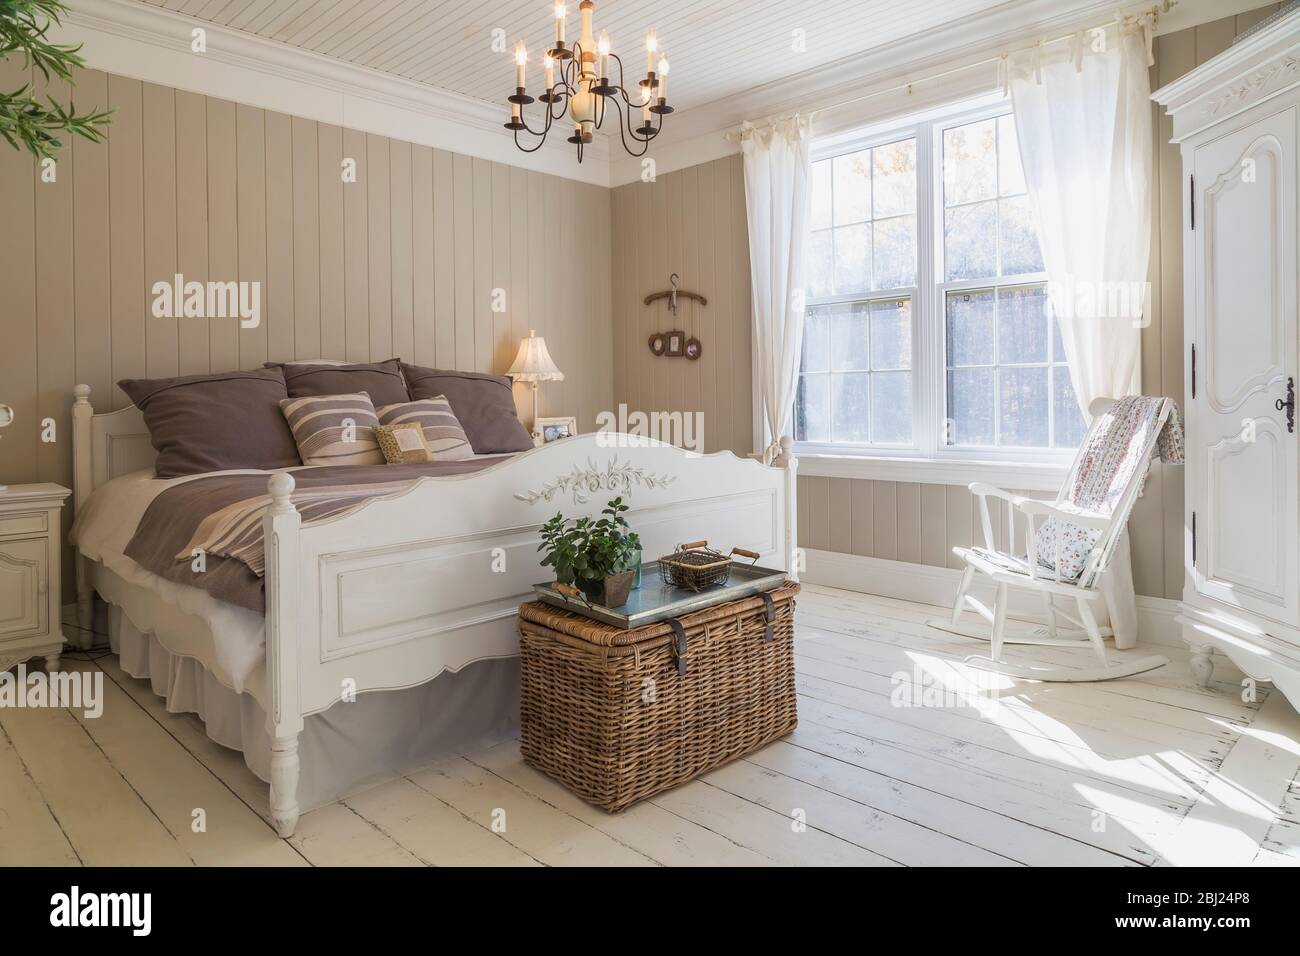 Bedroom With Double Bed Cream Painted Floorboards Brown Wood Panelled Wall White Furniture And Curtains Stock Photo Alamy